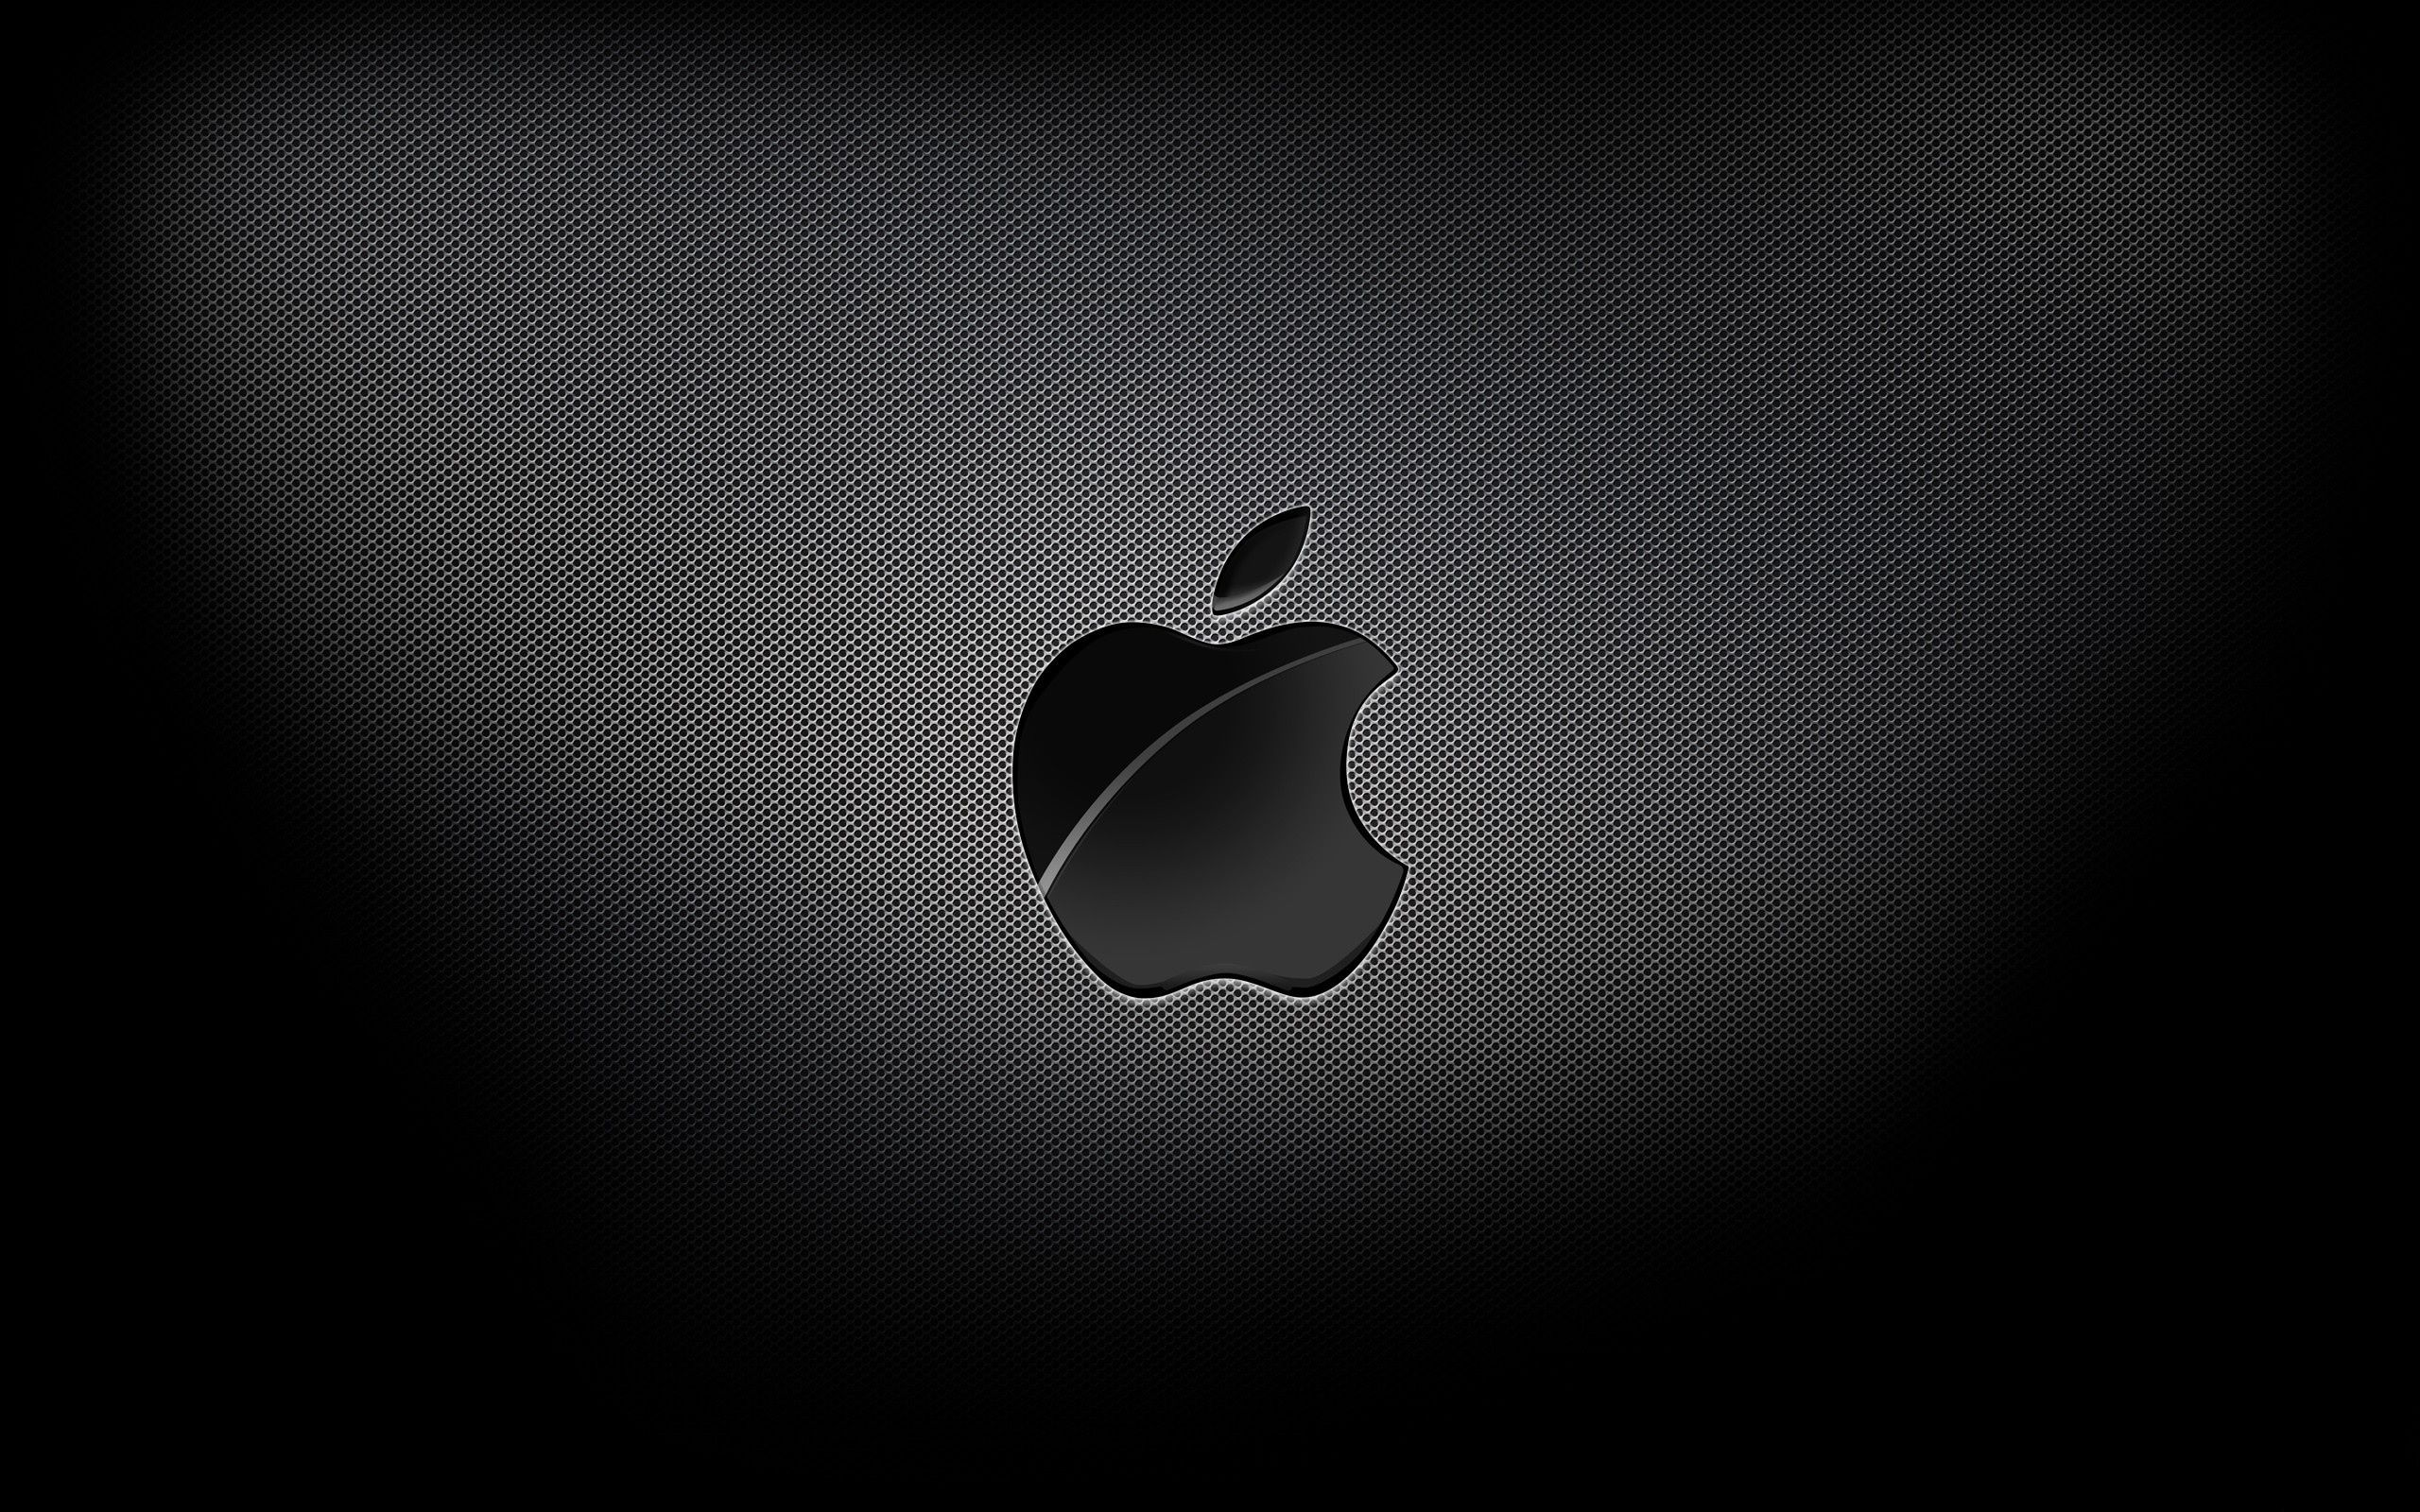 apple backgrounds for macbook pro 29 wallpapers